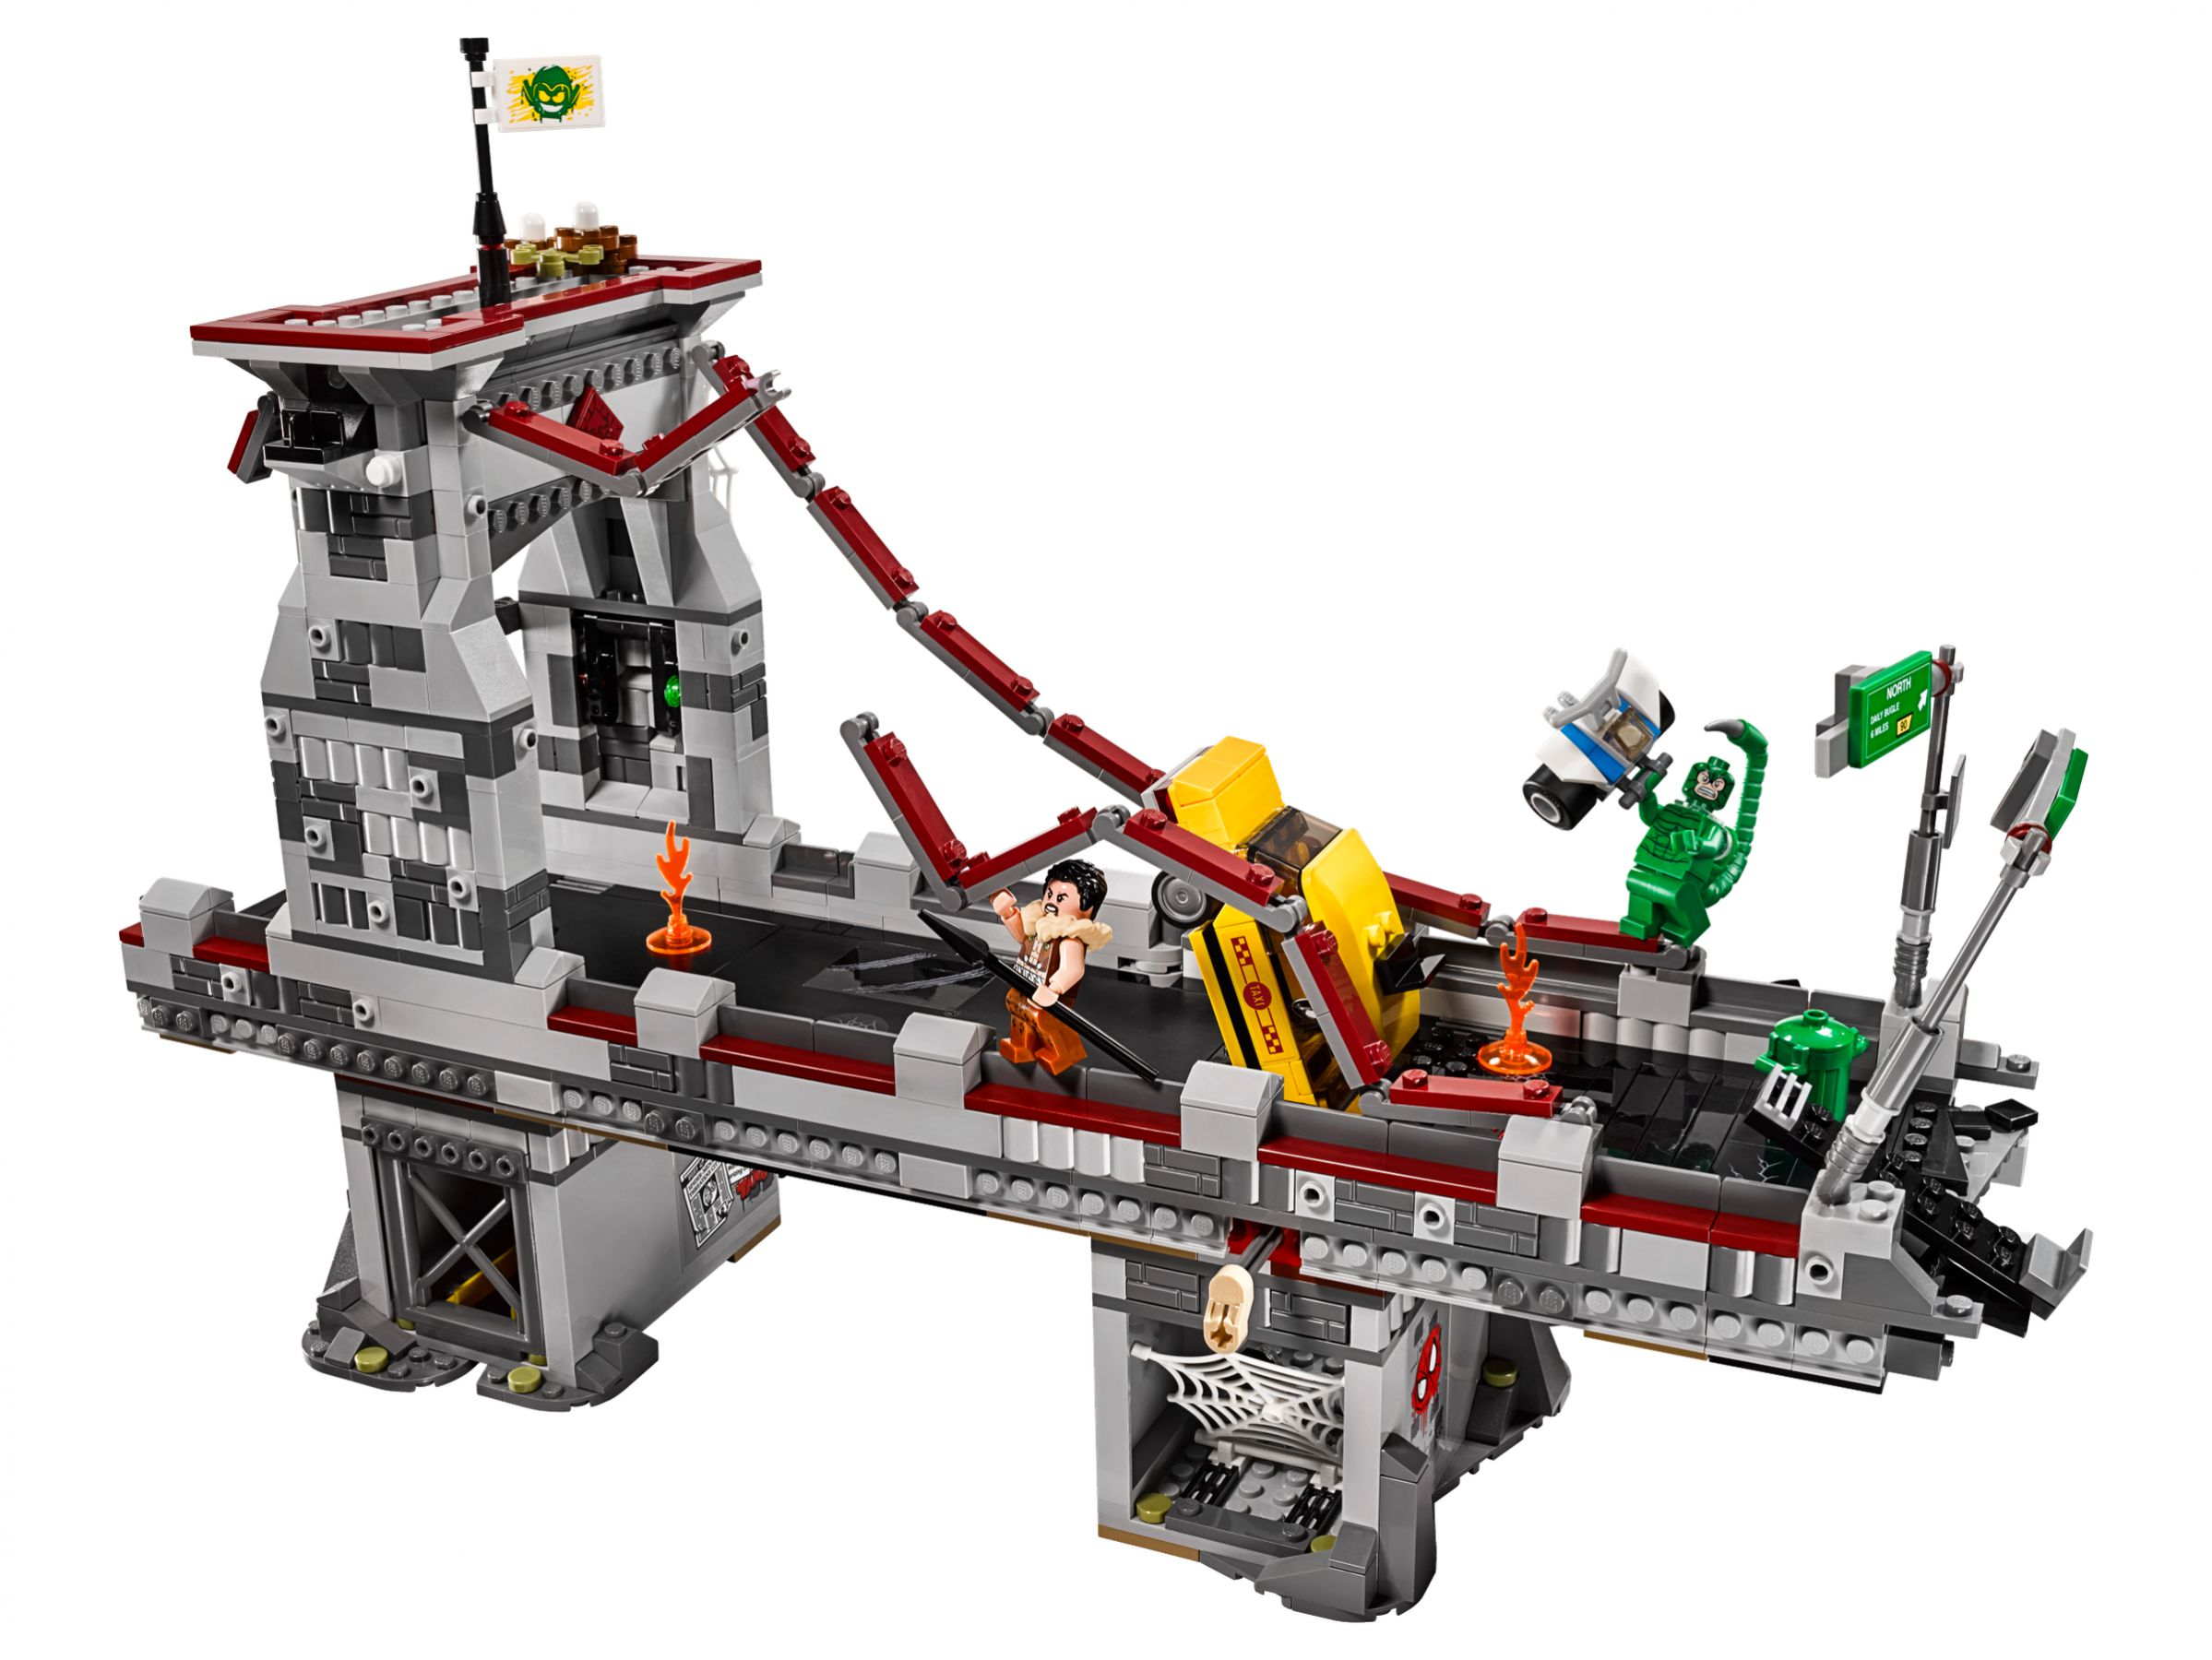 LEGO Super Heroes 76057 Spider-Man: Ultimatives Brückenduell der Web-Warriors LEGO_76057_alt2.jpg